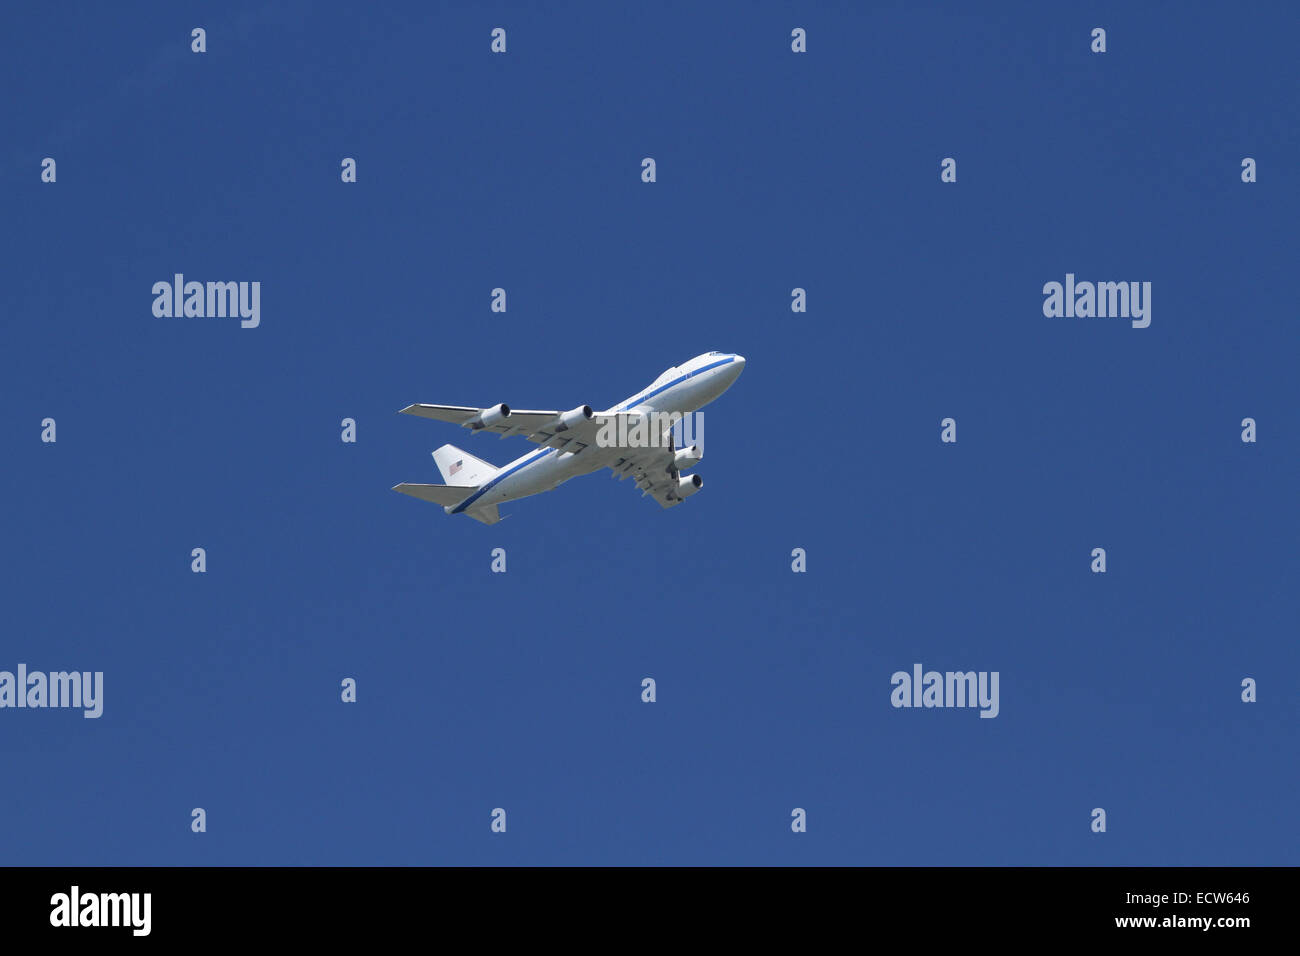 Air Force One. Modified Boeing VC-25A. Presidential Airplane of the United States of America. - Stock Image